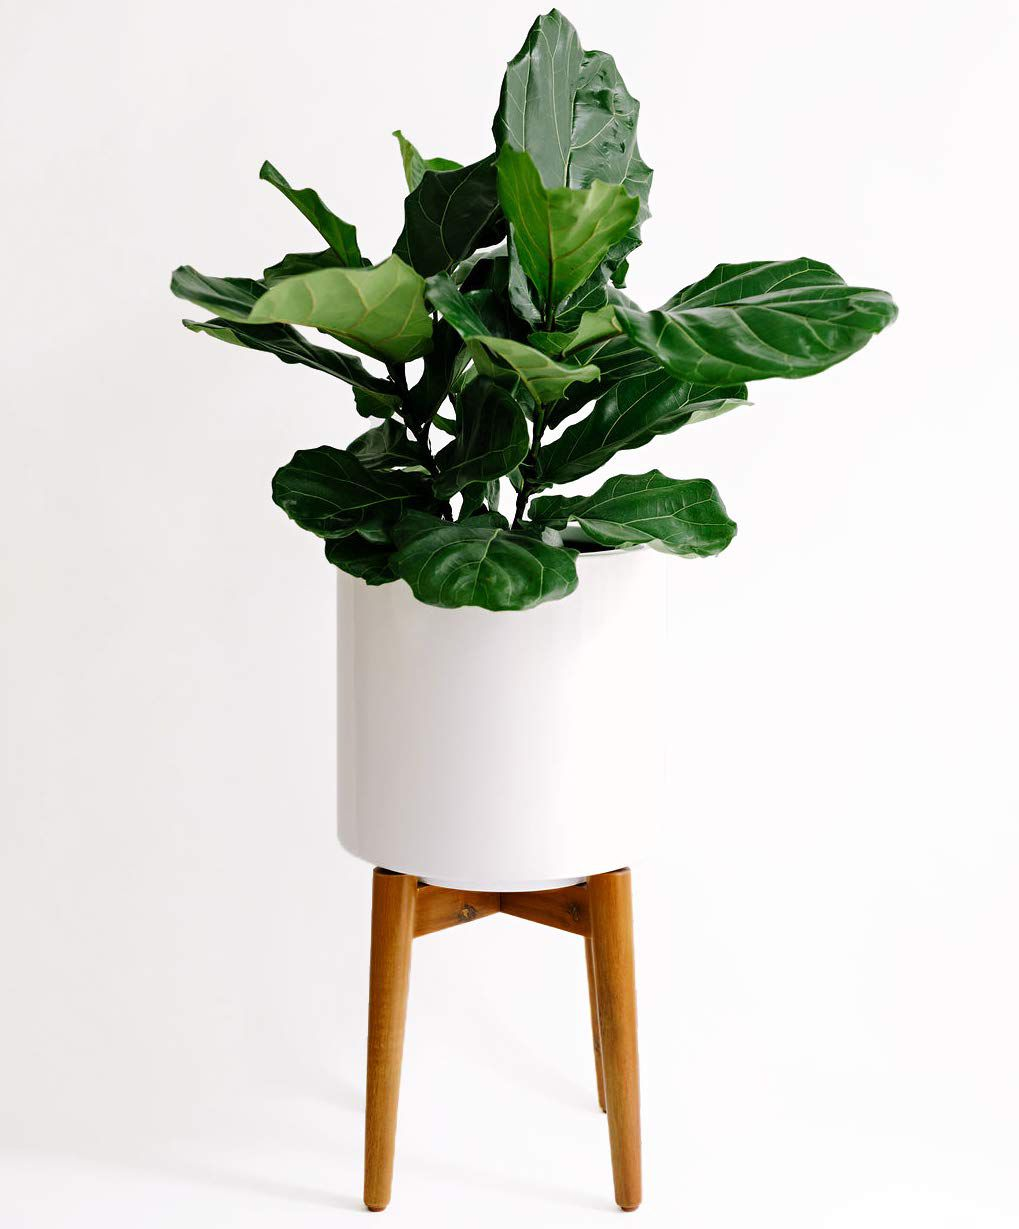 Planter—Amazon Mother's Day Gifts